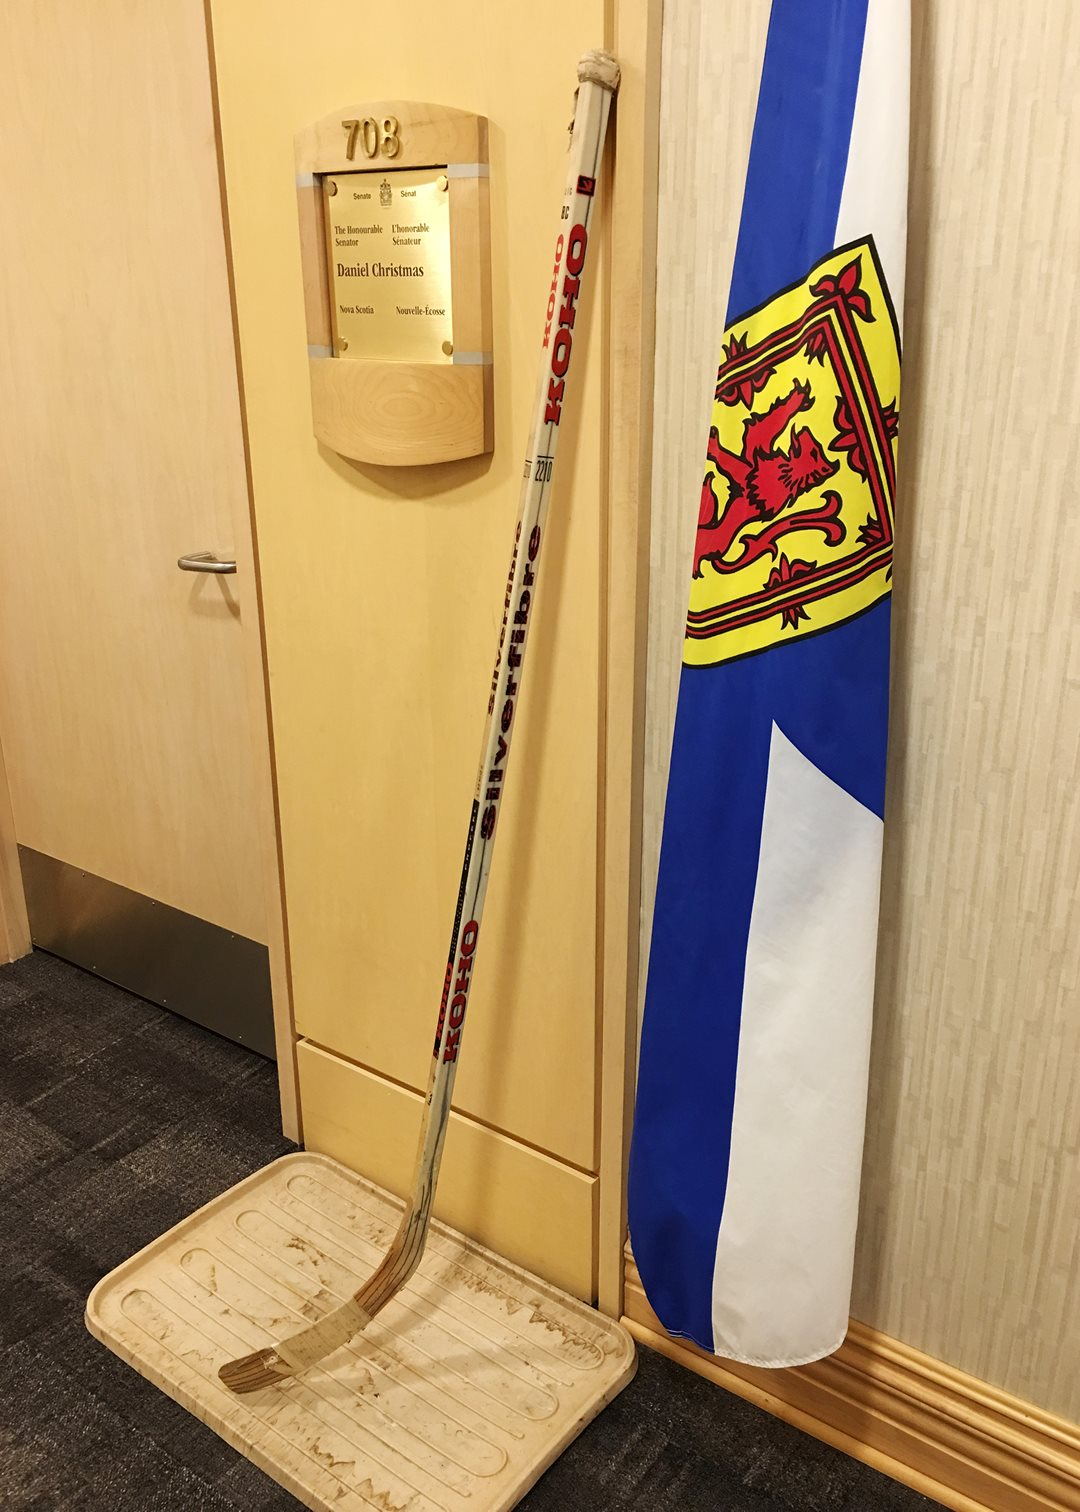 A hockey stick outside Senator Dan Christmas's office.